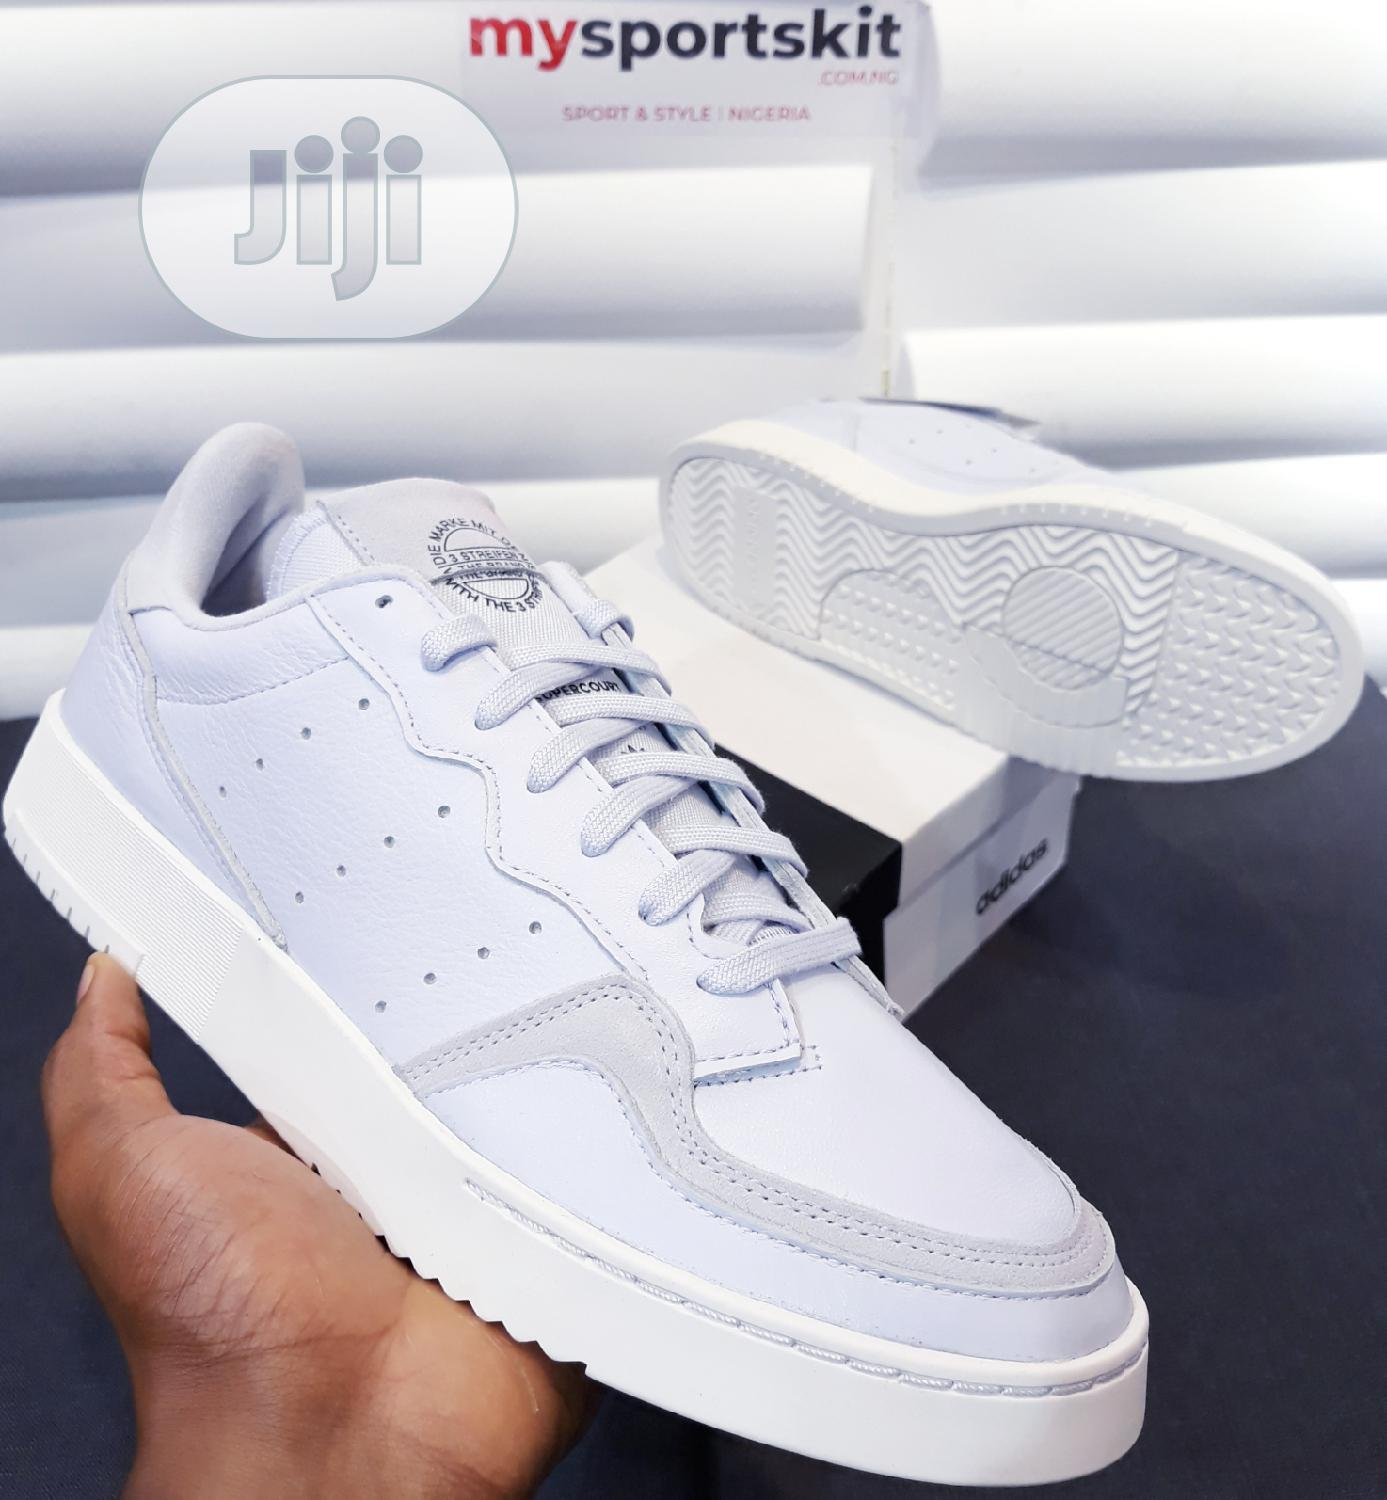 Authentic Adidas Supercourt All Leather